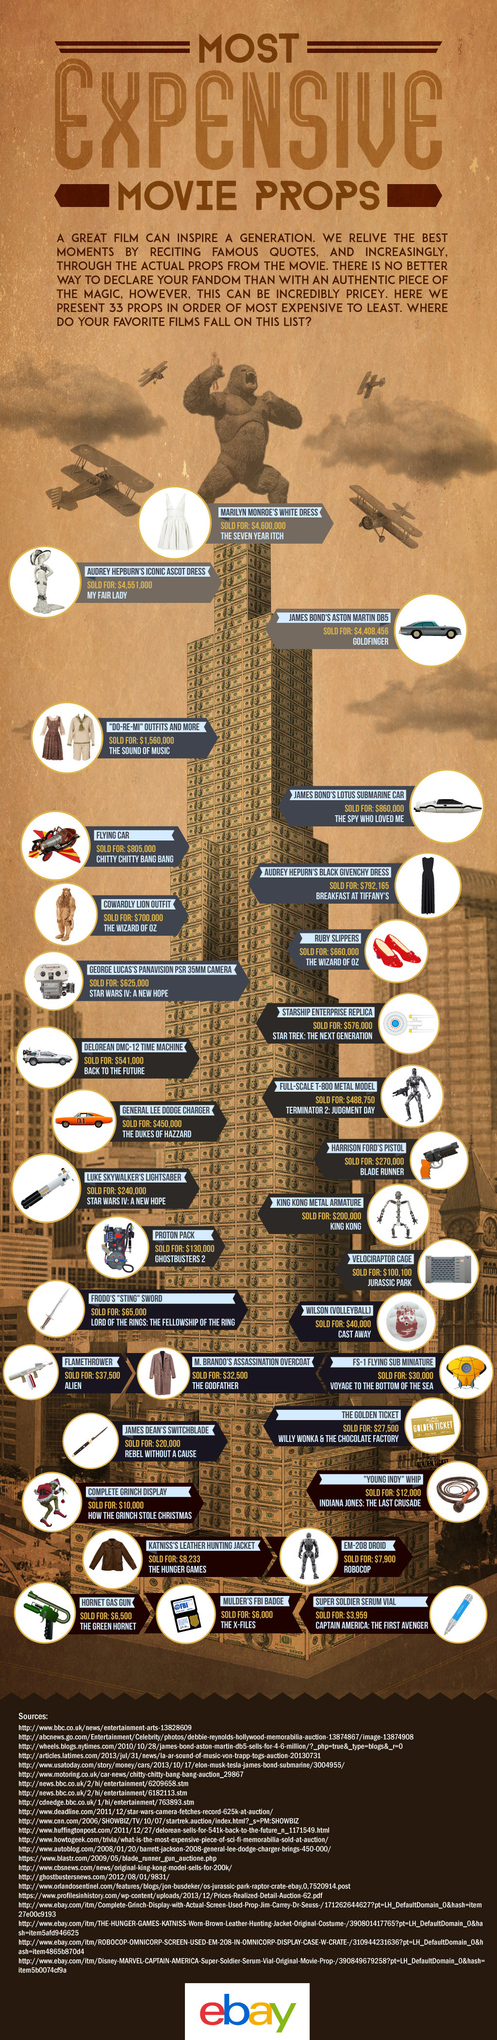 The most expensive movie props, in one graphic - Vox